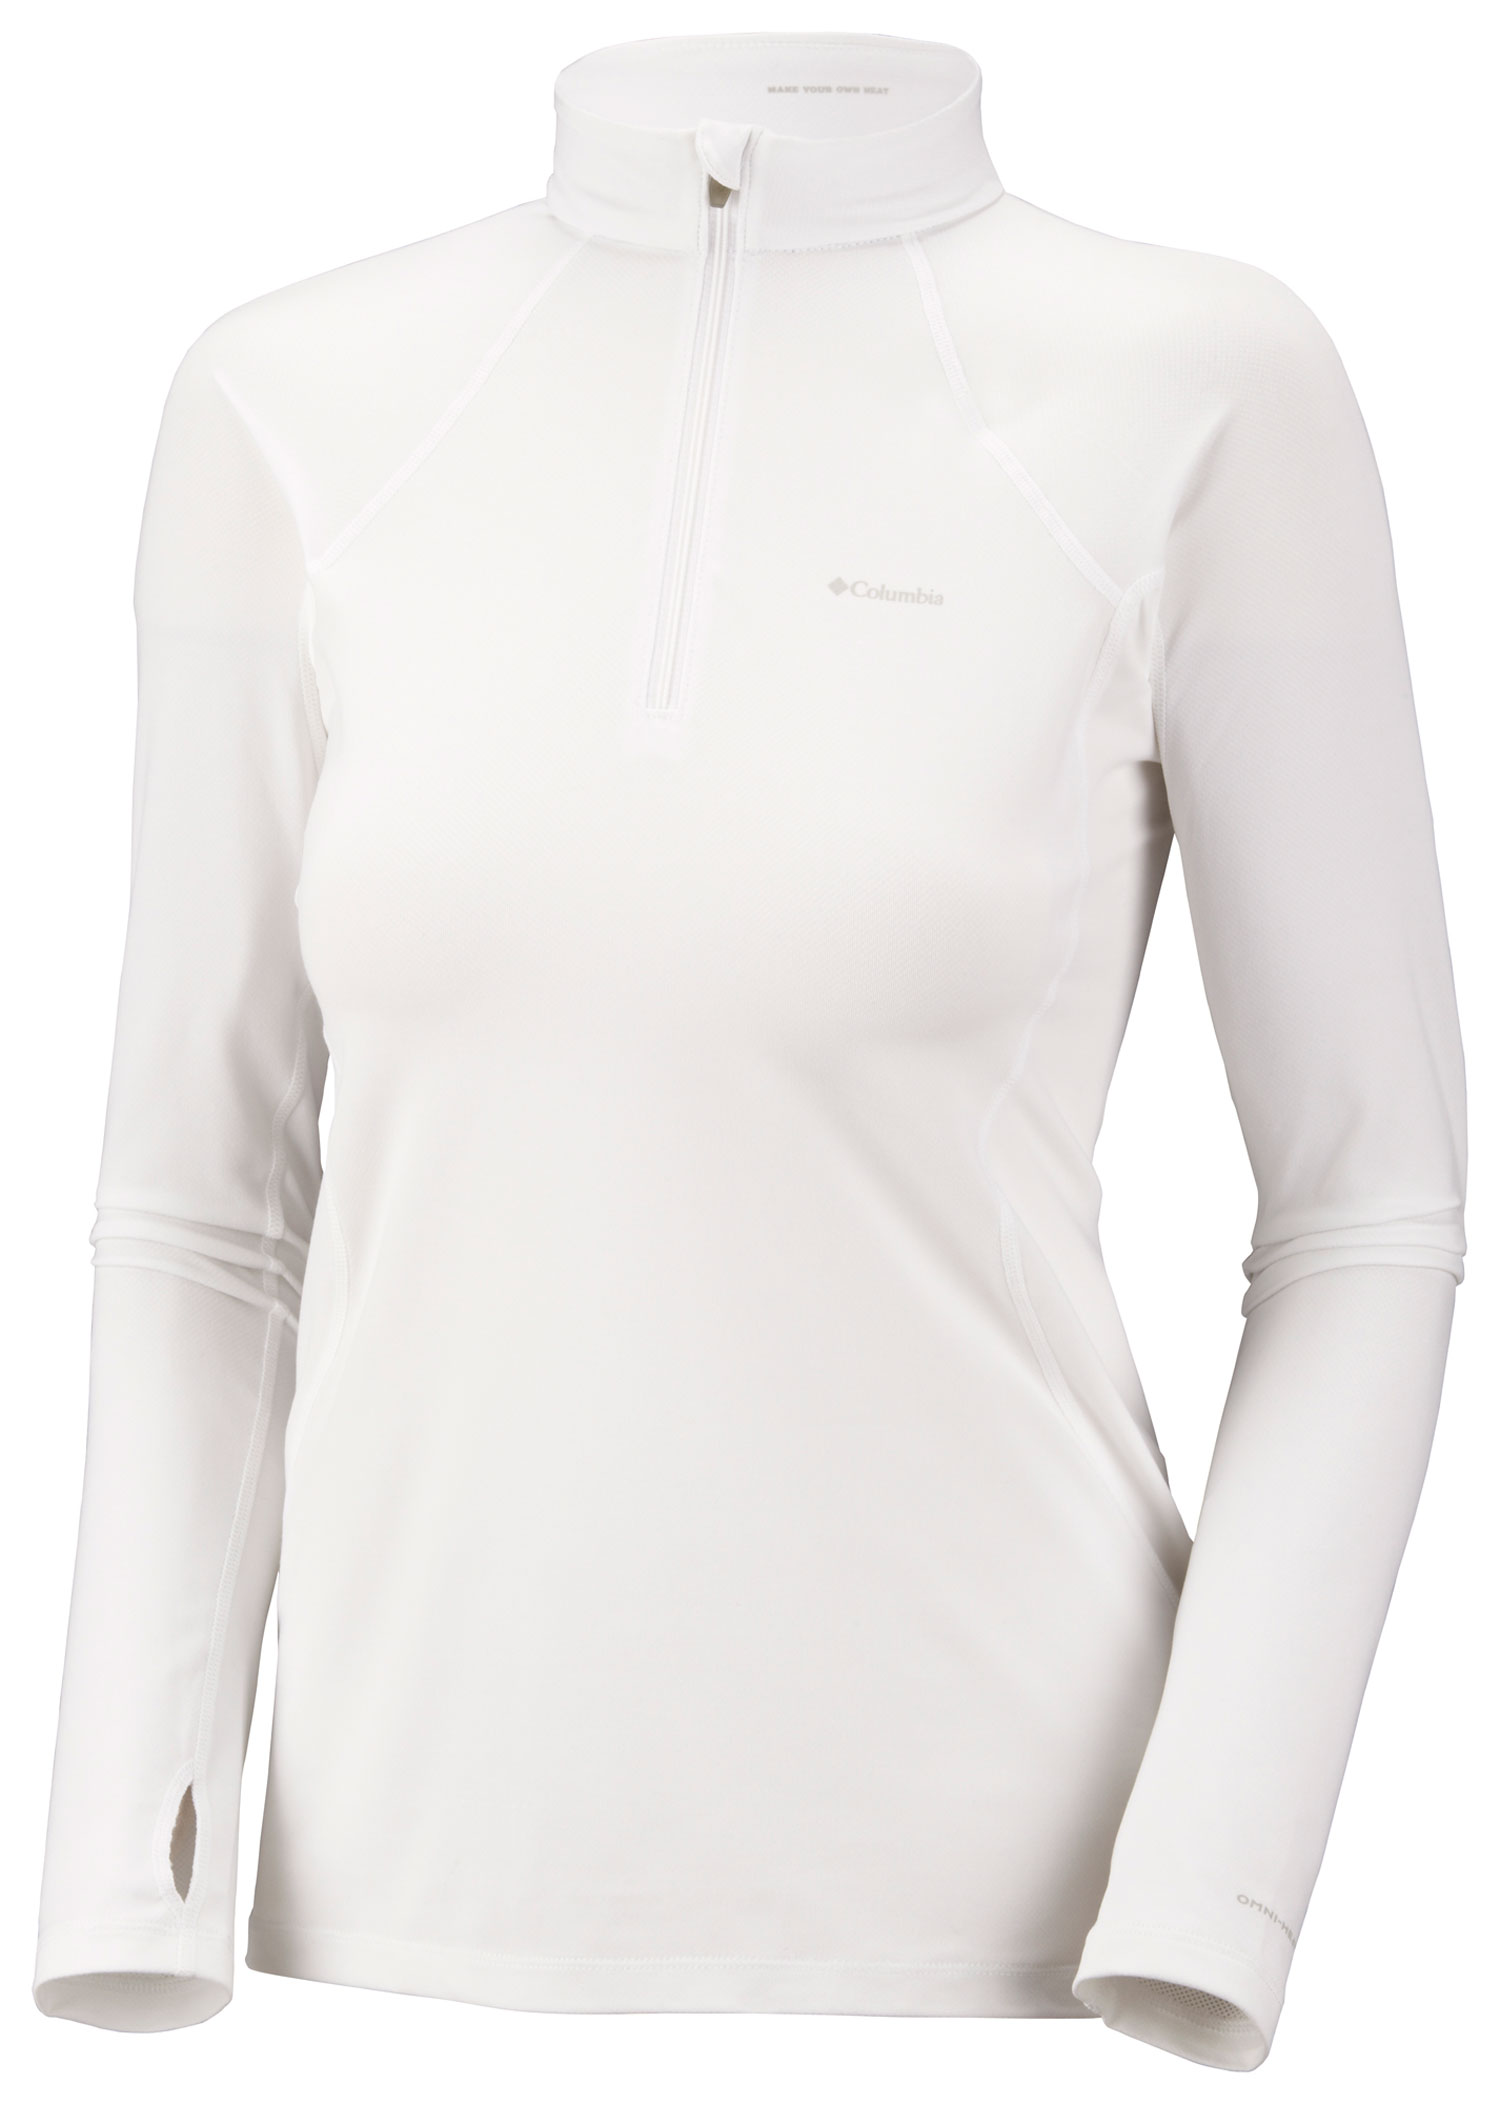 Key Features of the Columbia Baselayer L/S 1/2 Zip Top: FABRIC 85% polyester/15% elastane sweet rev. FIT Performance Omni-Heat thermal re?ective Omni-Wick Breathable Antimicrobial 4-way comfort stretch Ergonomic seaming Thumb holes - $47.95